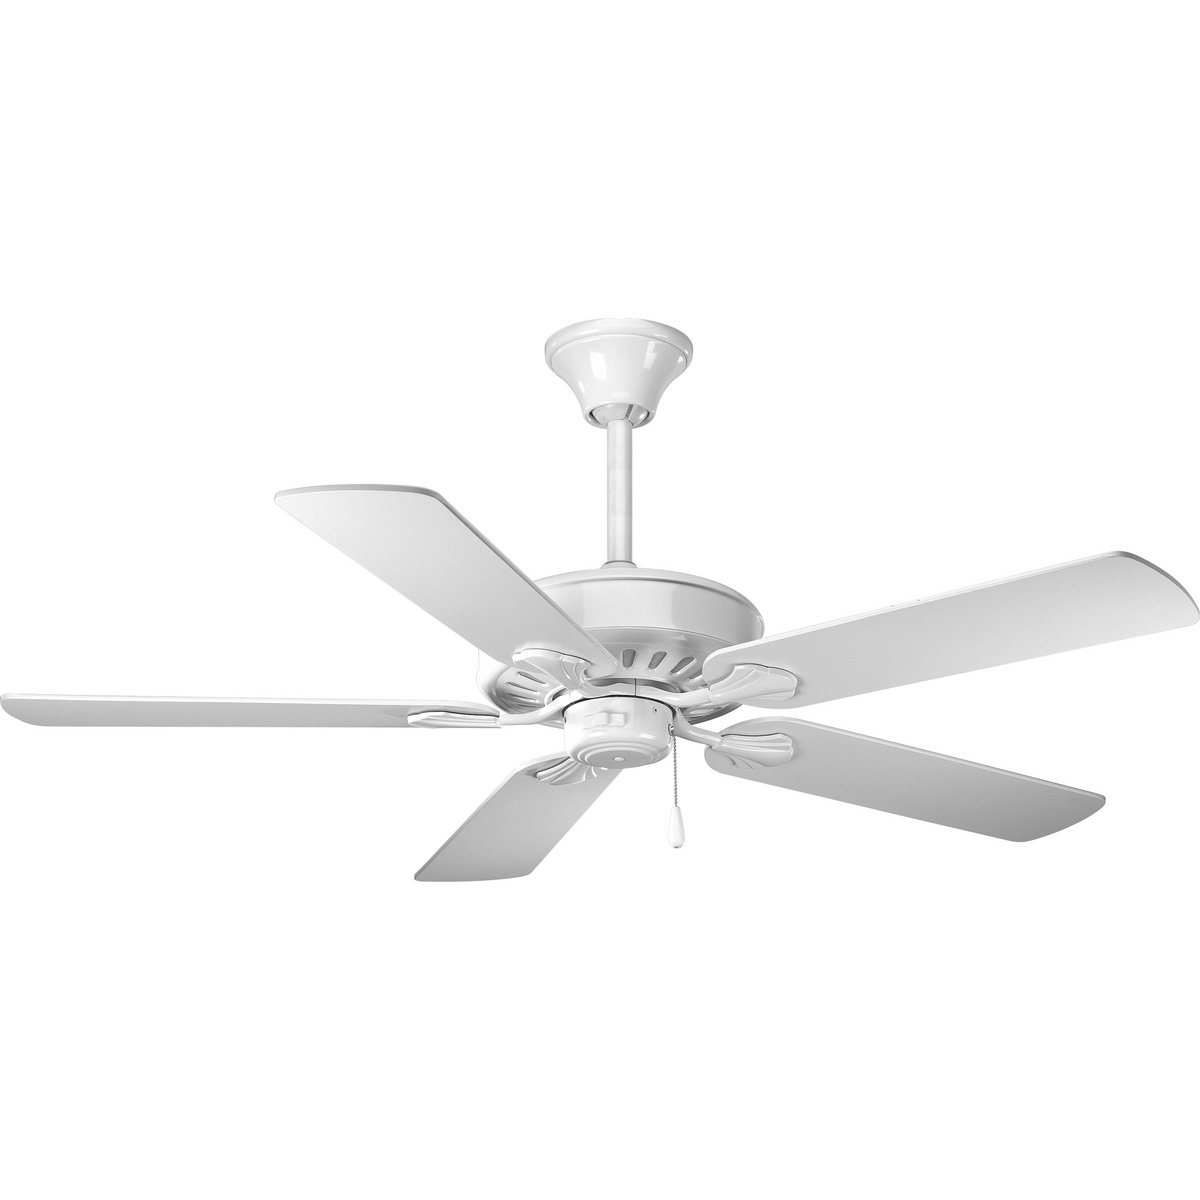 Progress Lighting P2503-30W 52-Inch Performance 5 Blade Fan with 3-Speed Reversible Motor, White